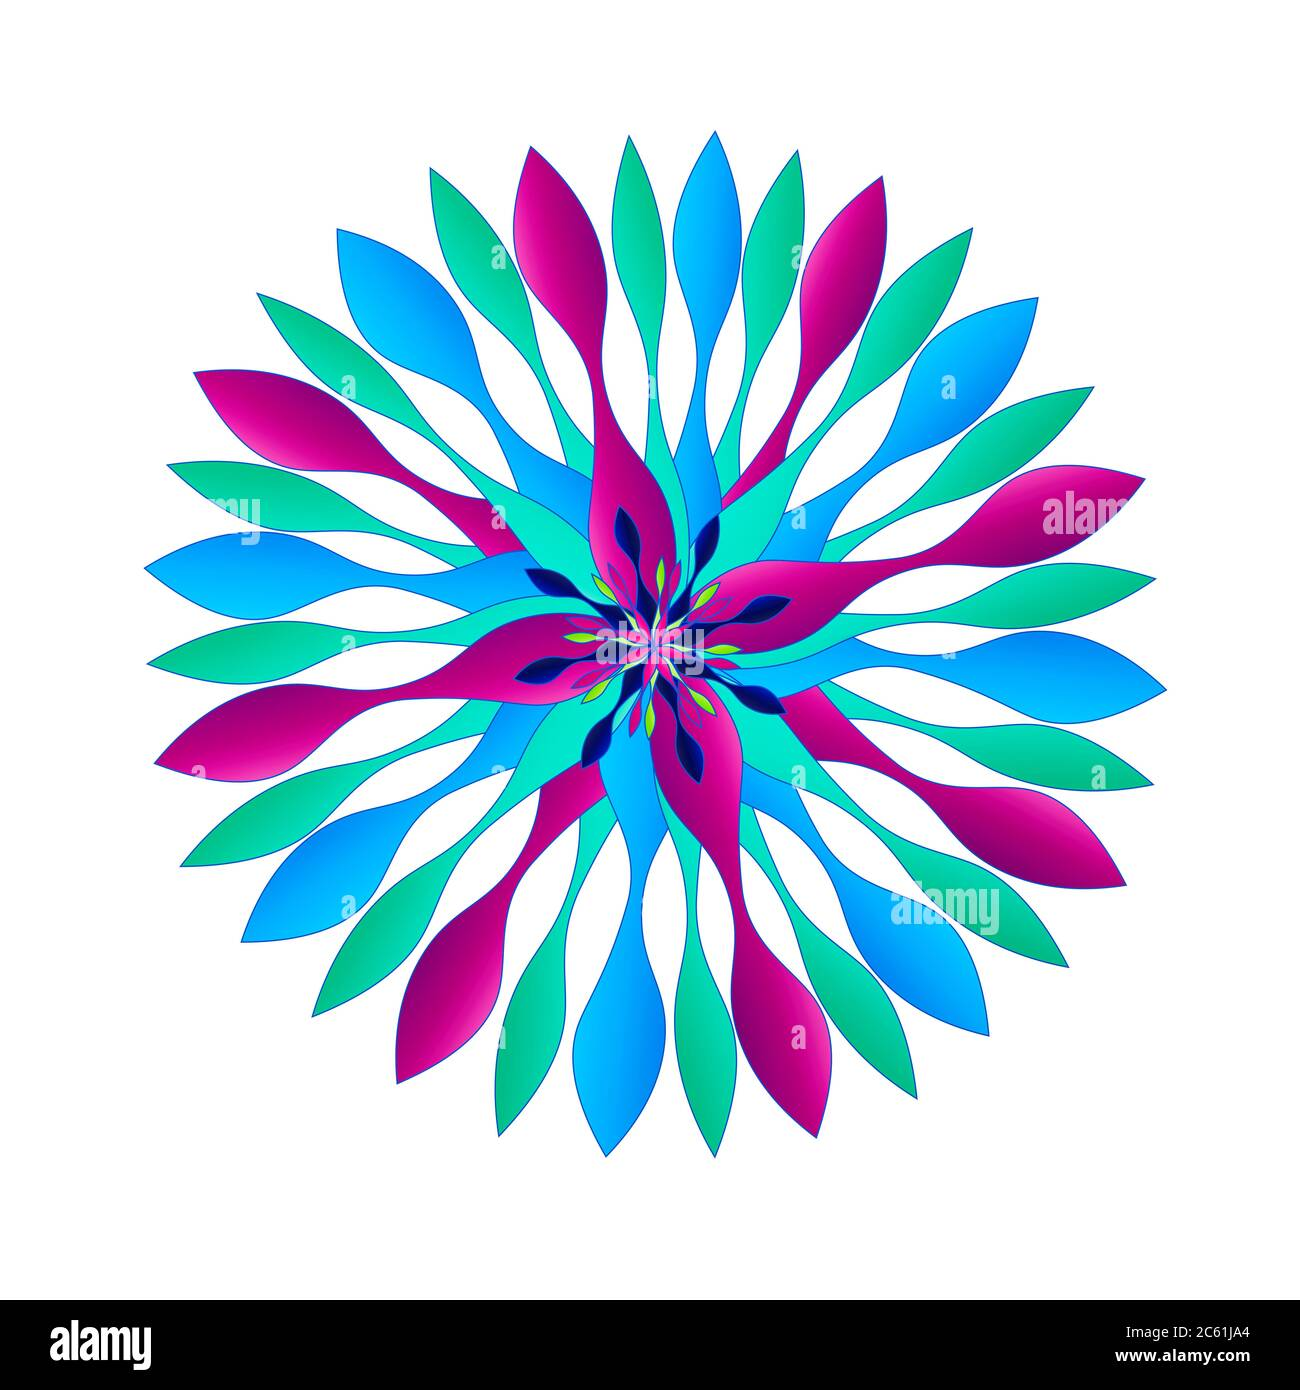 Beautiful graphic Spinner-like design Motifs in a unique colorful scheme of colors including purple, aqua teal and blues.  Some with borders. Stock Photo